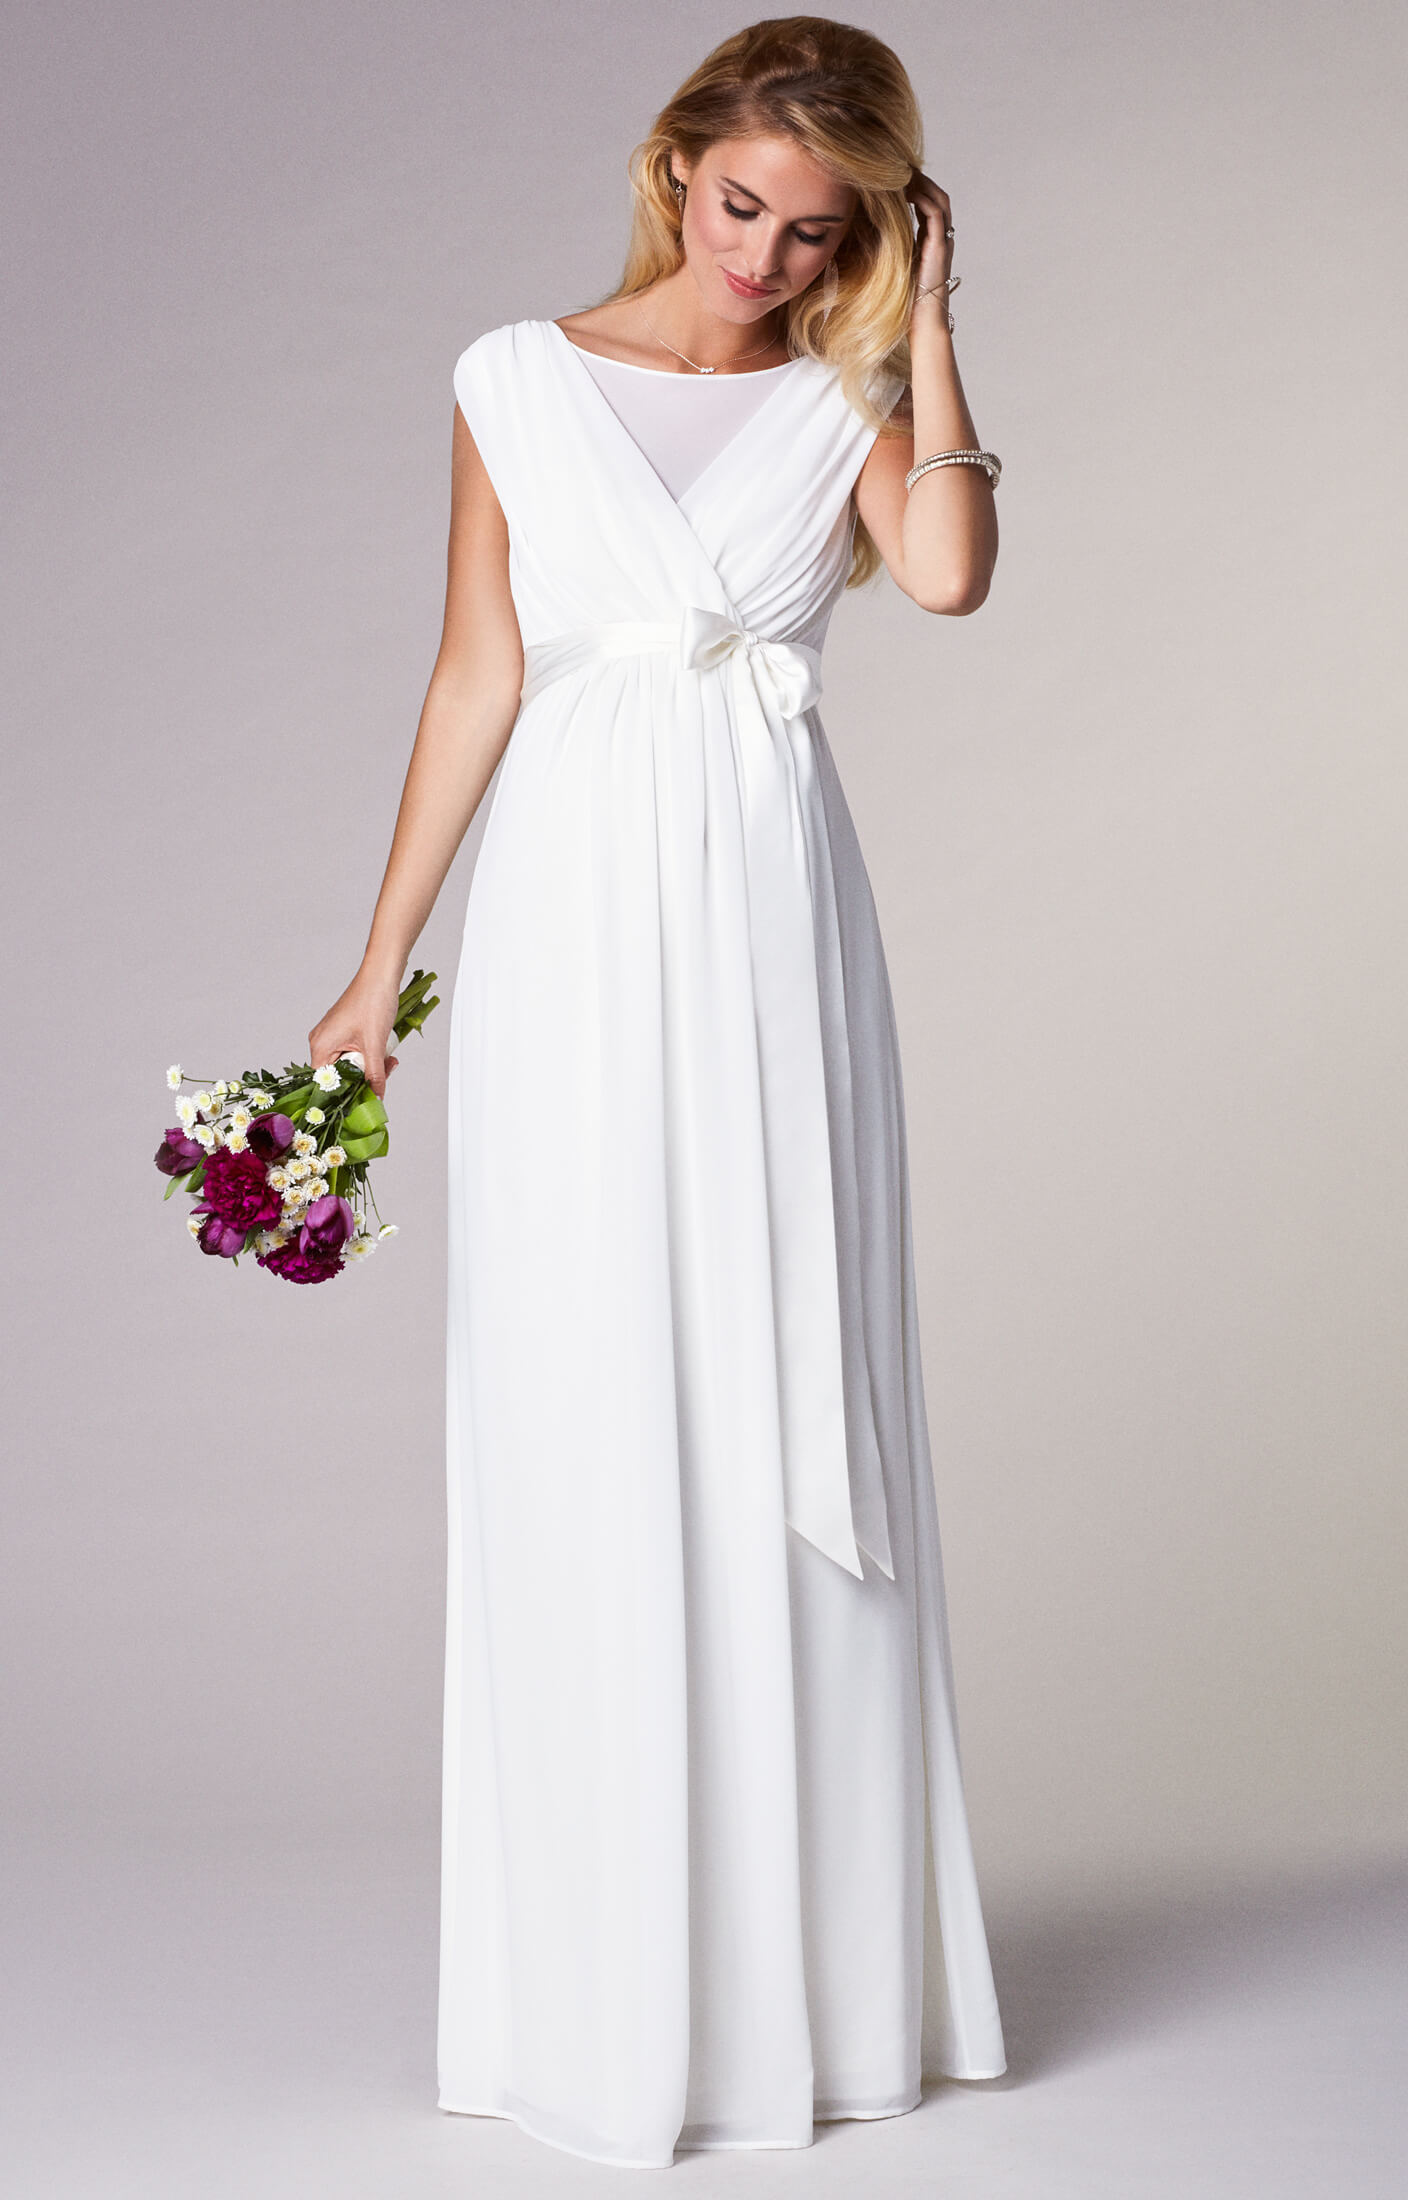 5784c22b50c6c Georgette Maternity Wedding Gown Long Ivory - Maternity Wedding ...